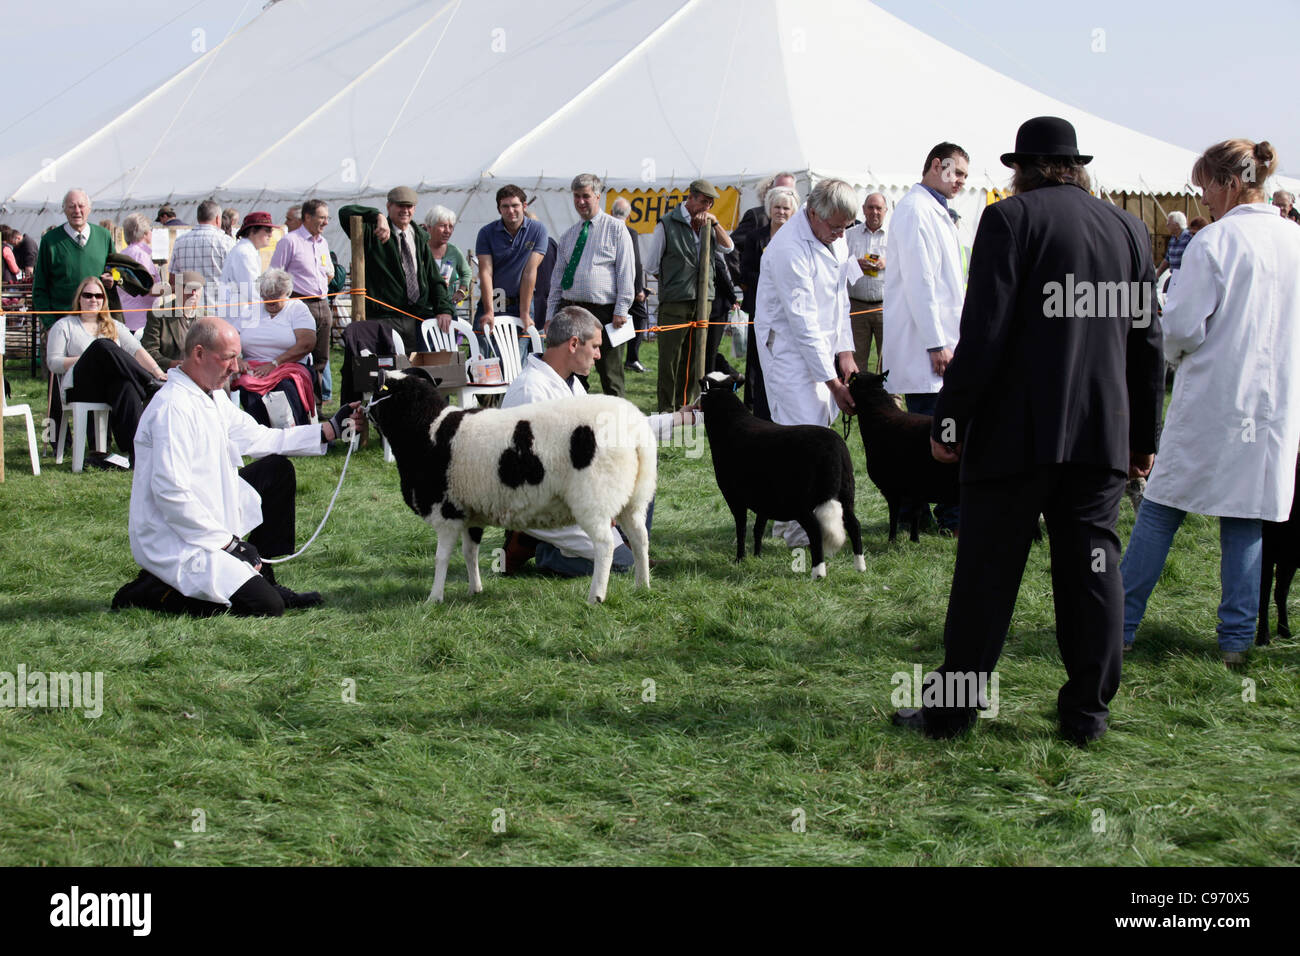 Rare breeds judging at Gransden and District Agricultural Show 2011 - Stock Image